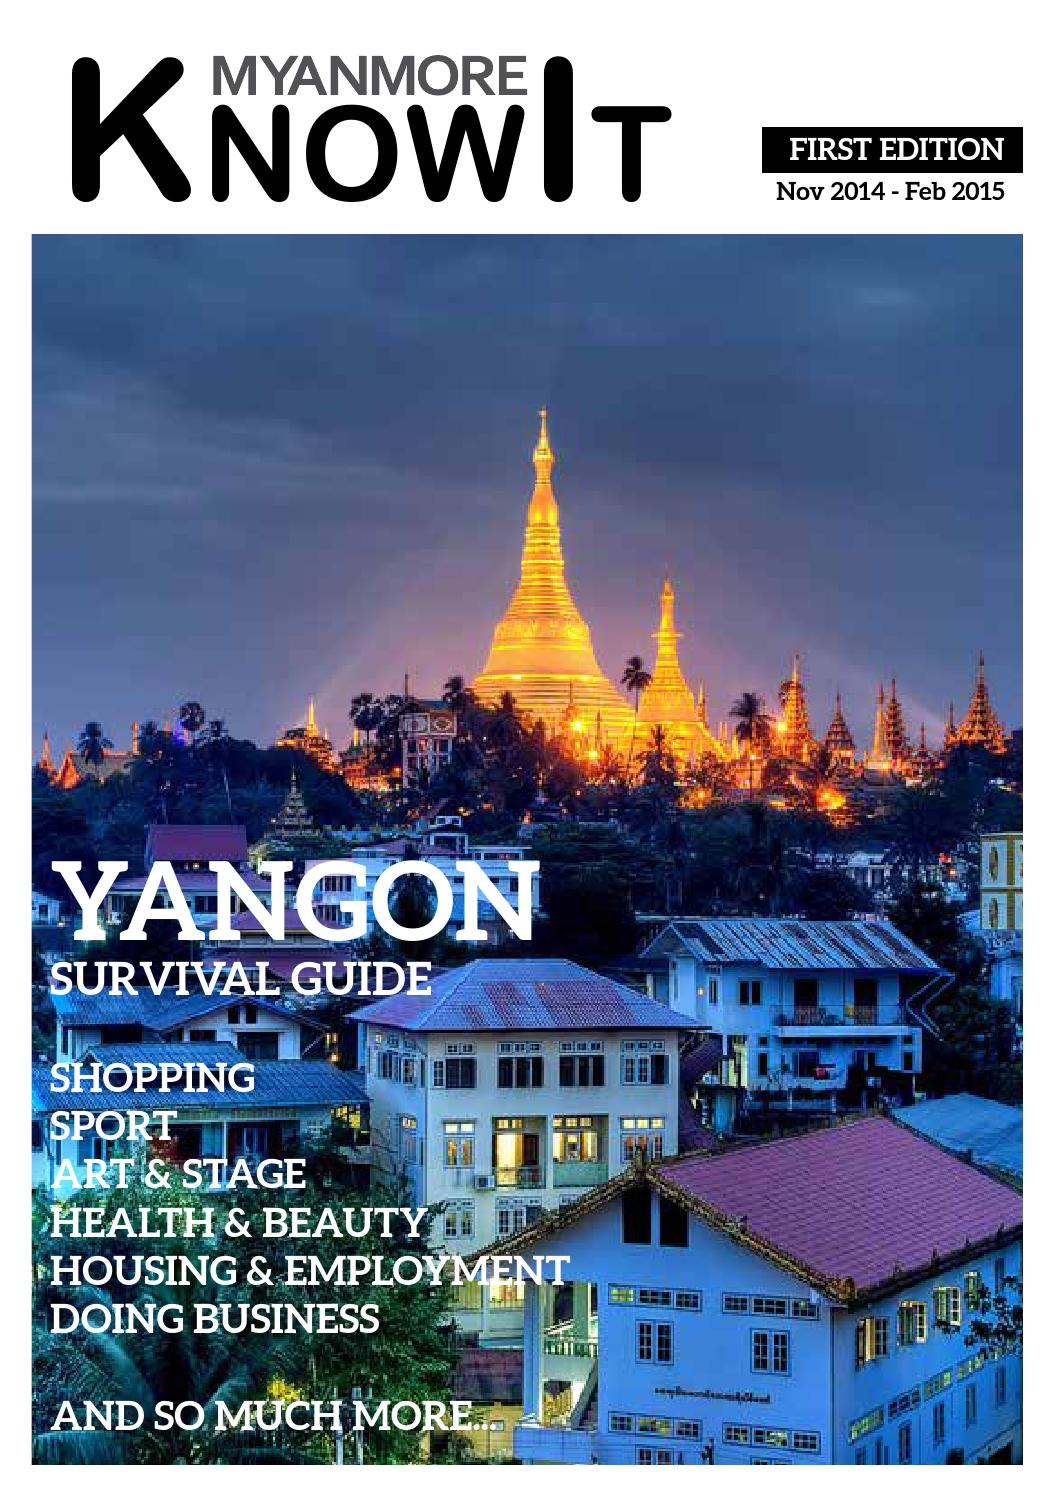 Myanmar investment and commercial bank yangon myanmar massage unc hades dogs shadow broker investment